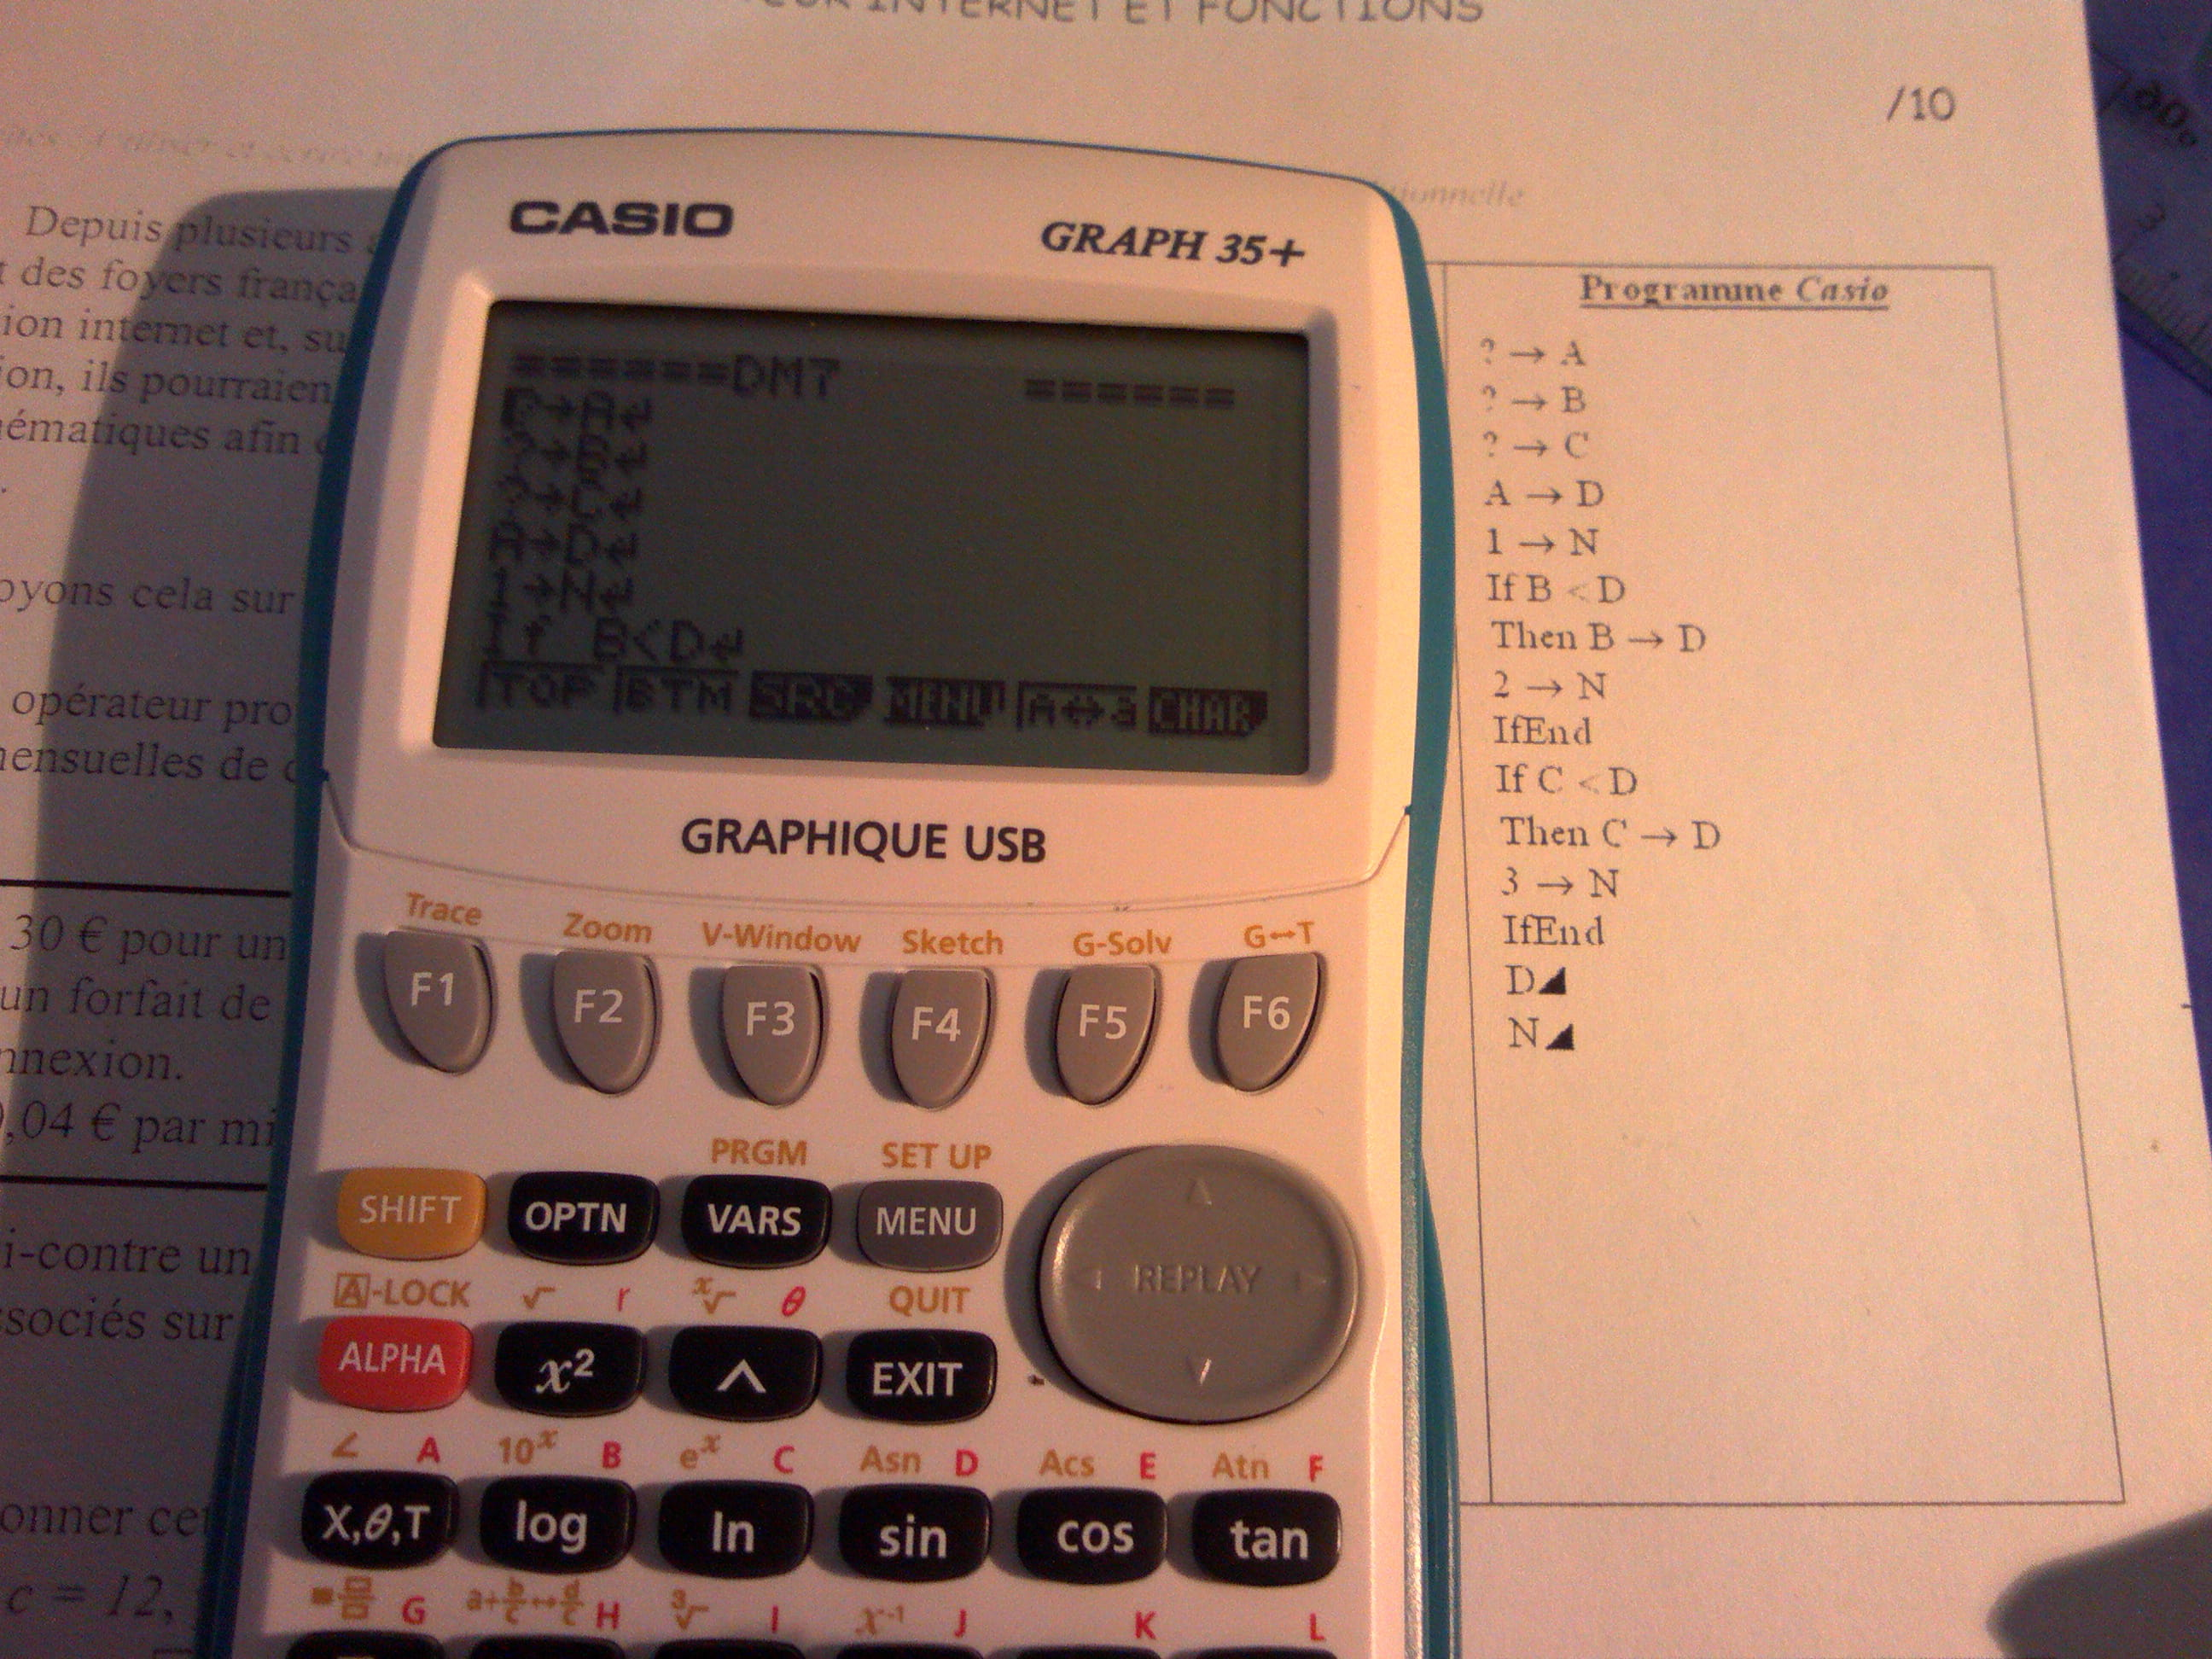 GRATUIT GRAPH PROGRAMME TÉLÉCHARGER CASIO CALCULATRICE 35